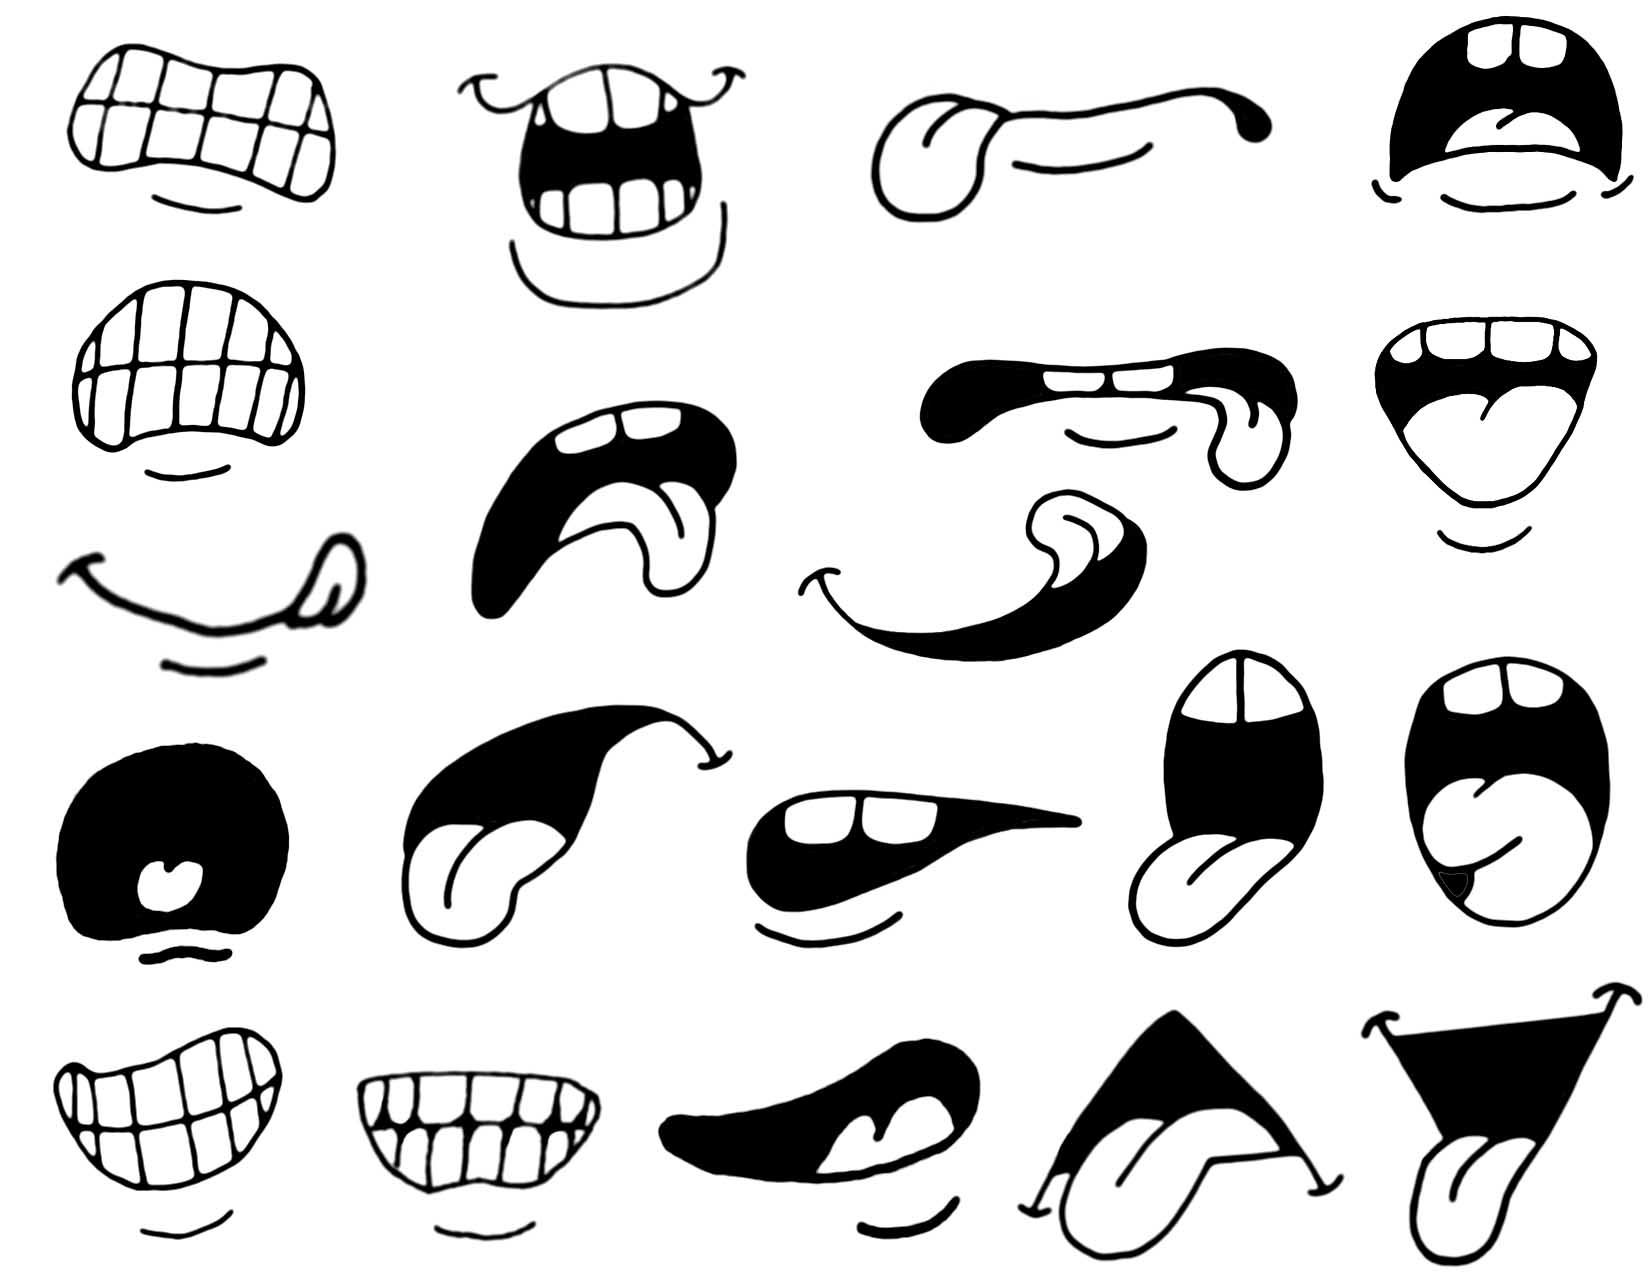 Intermediate Mouths Slightly More Difficult Copy